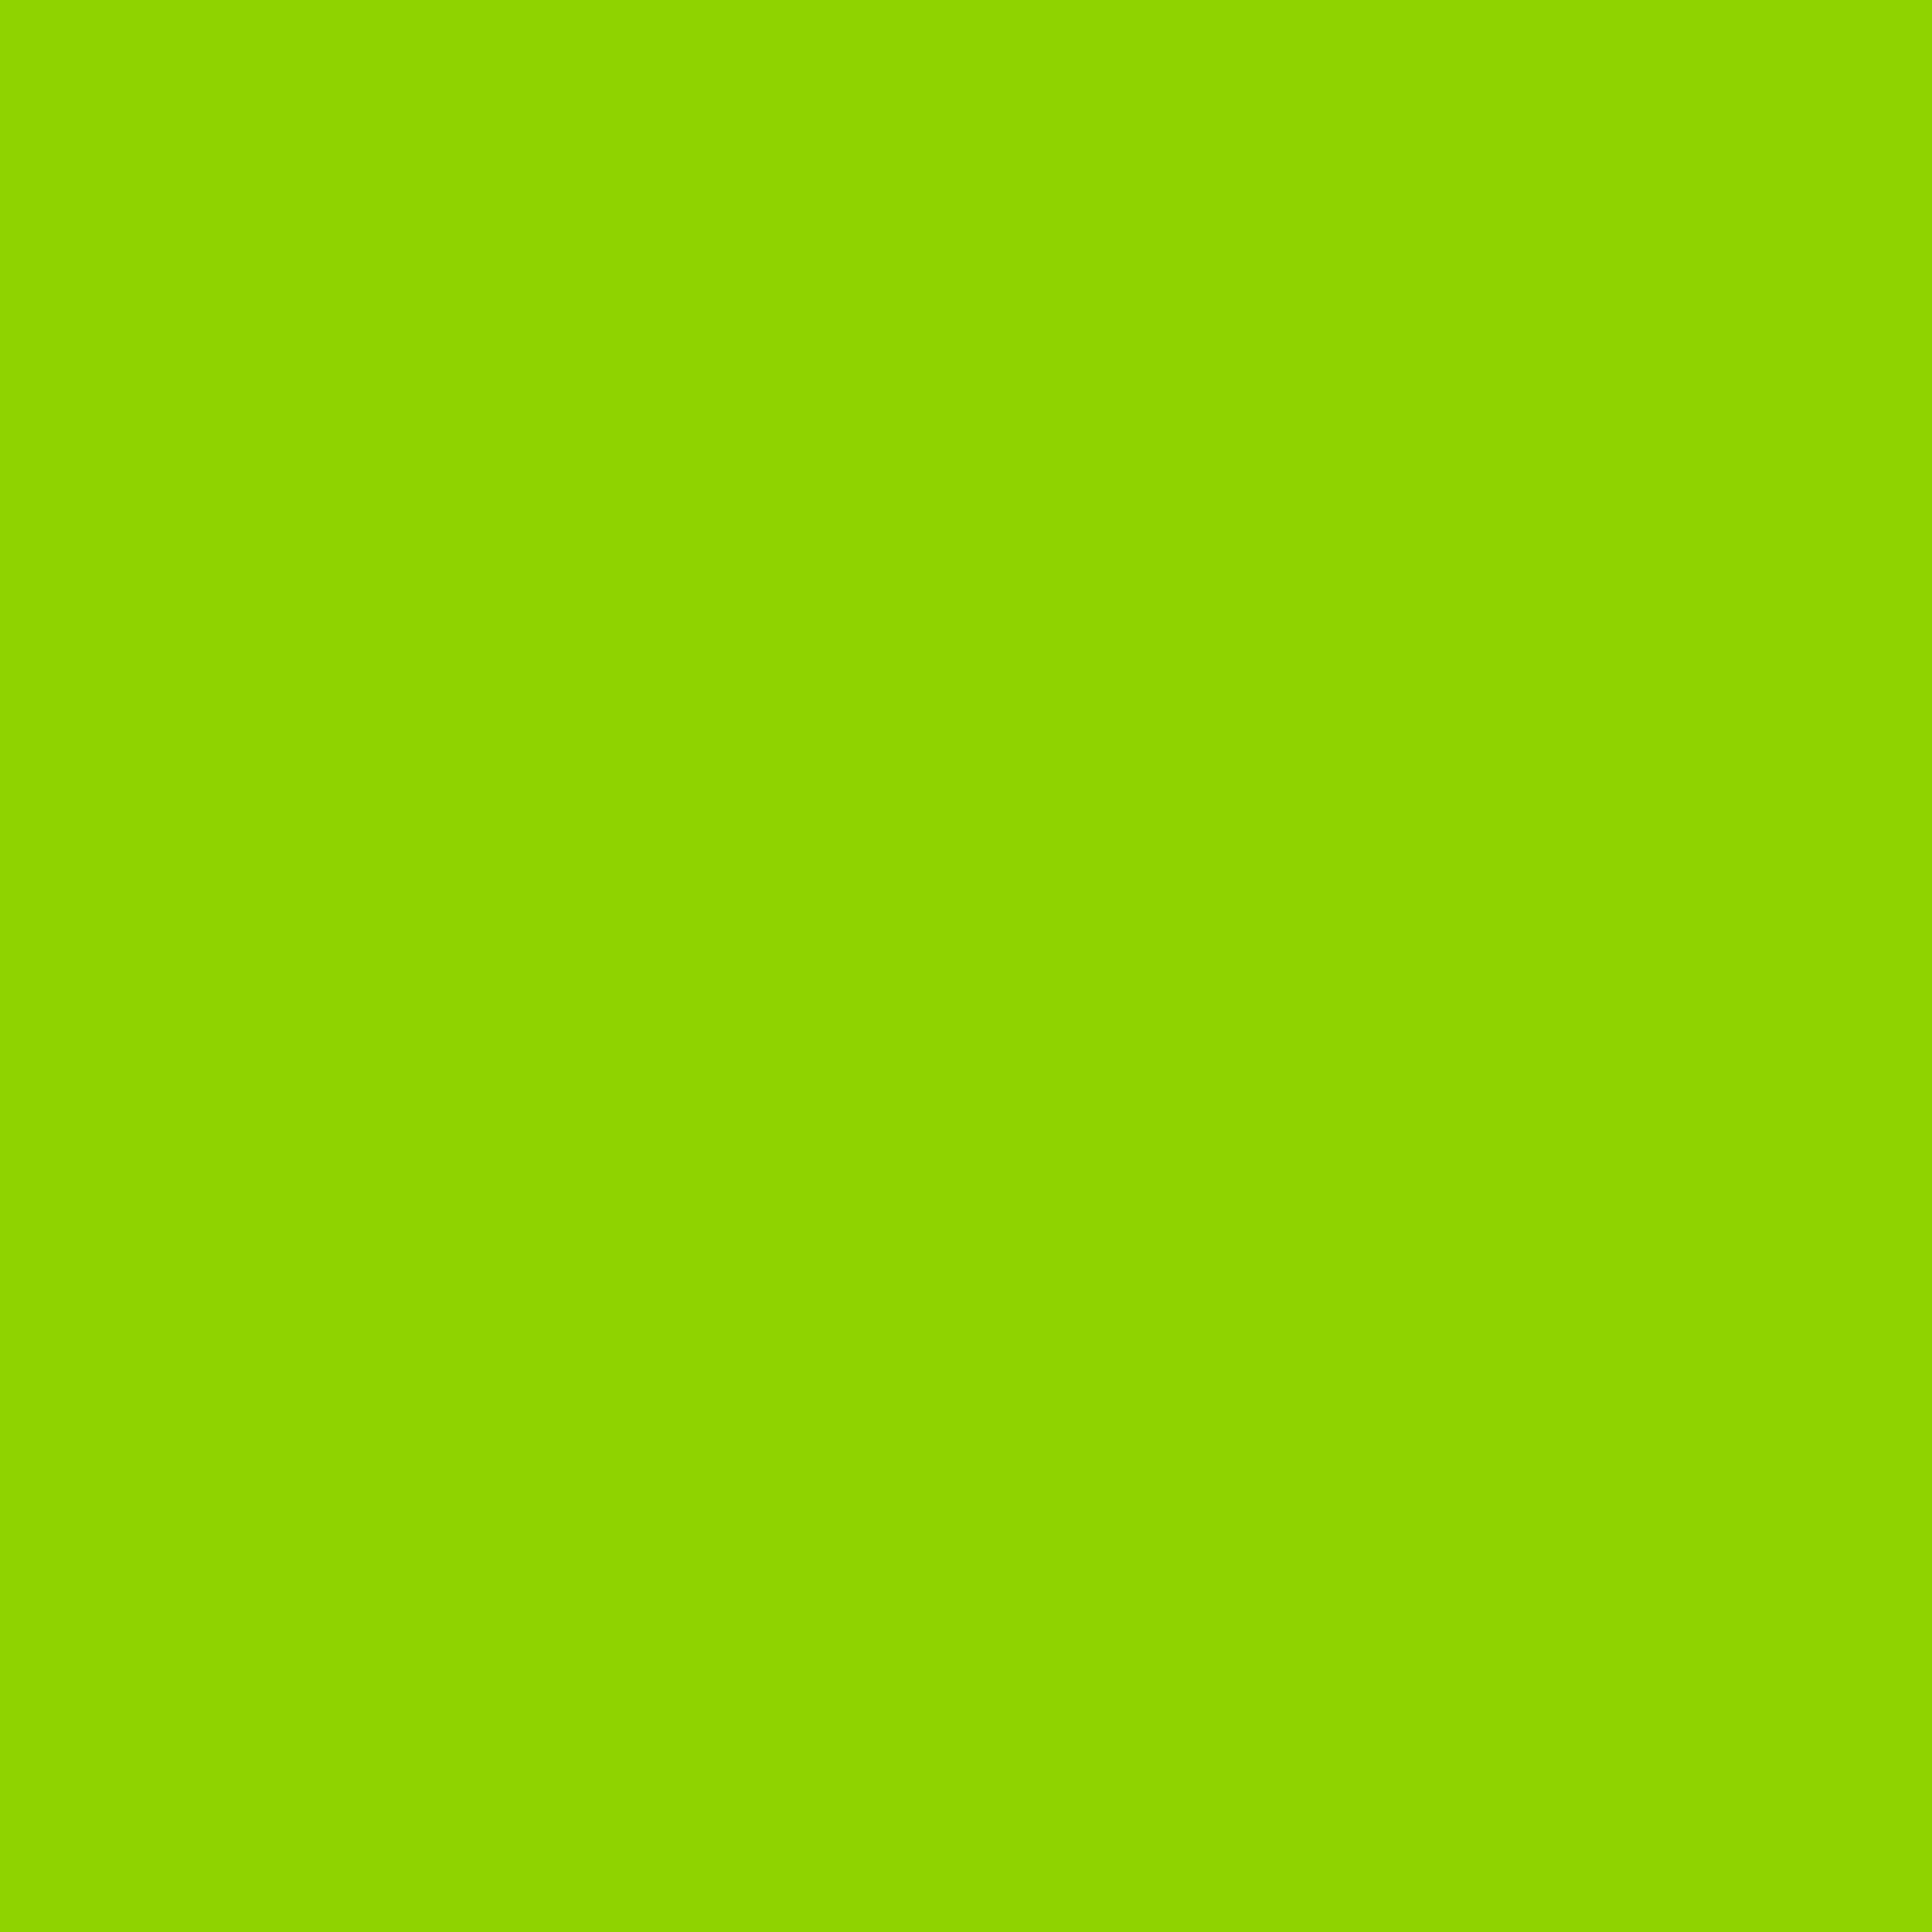 2048x2048 Sheen Green Solid Color Background